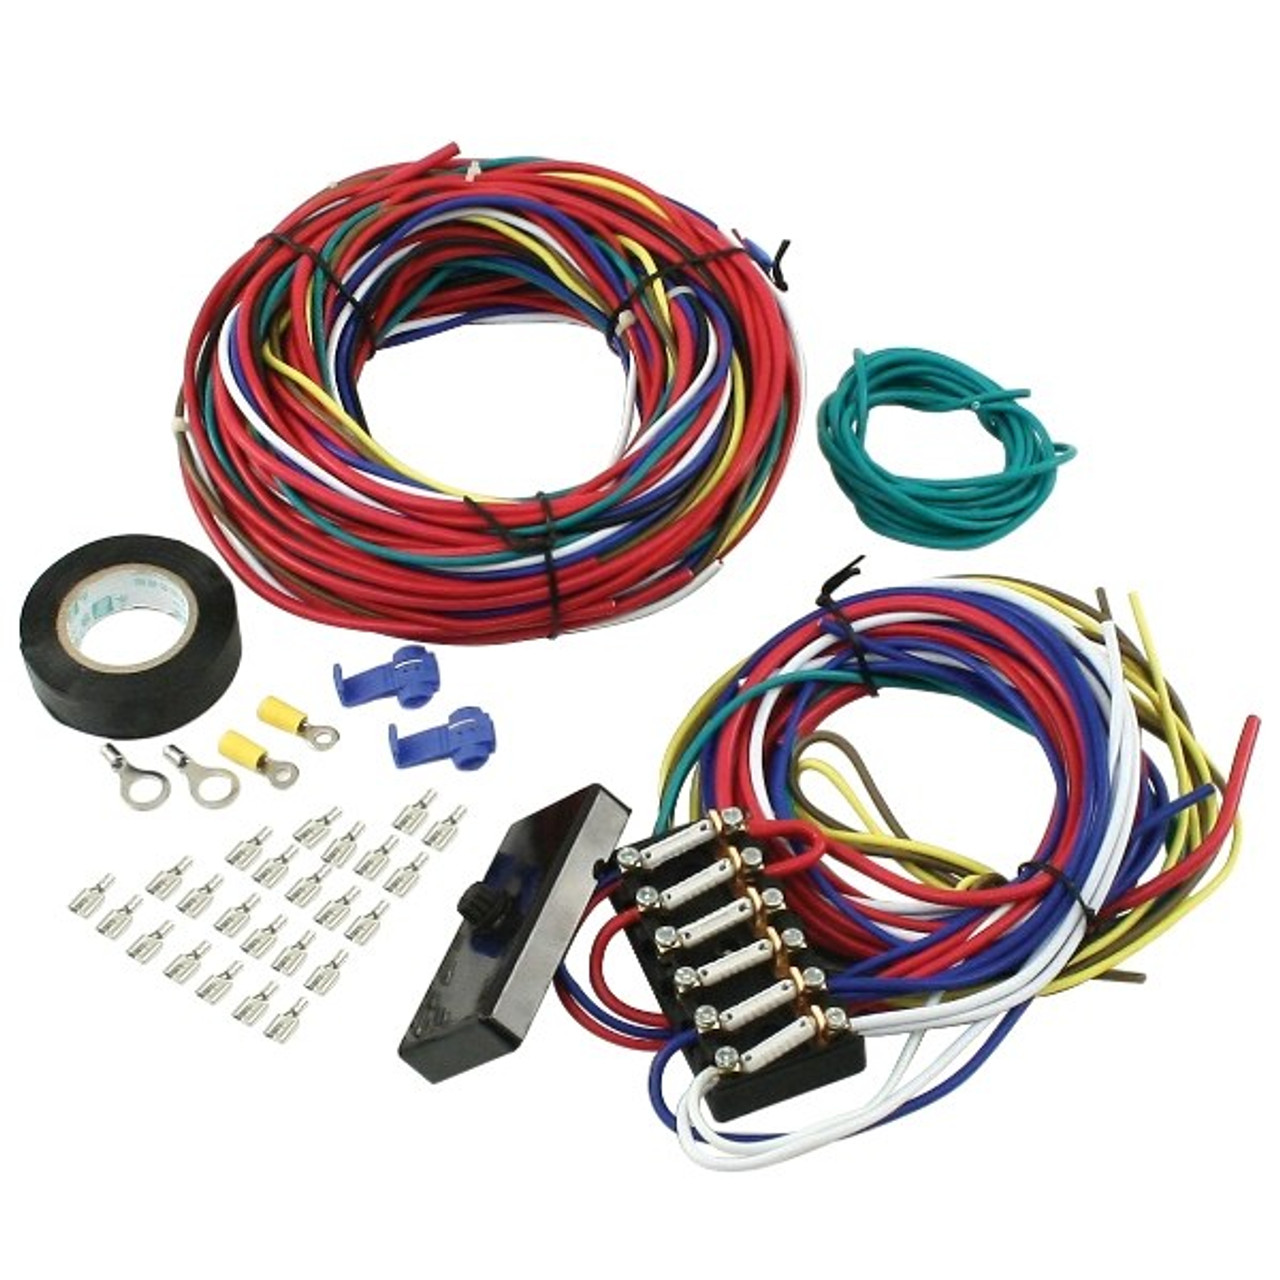 large AC971000__14441.1421968365?c=2 buggy manx wiring harness dune buggy parts, sandrail parts, vw electrical wiring harness at webbmarketing.co